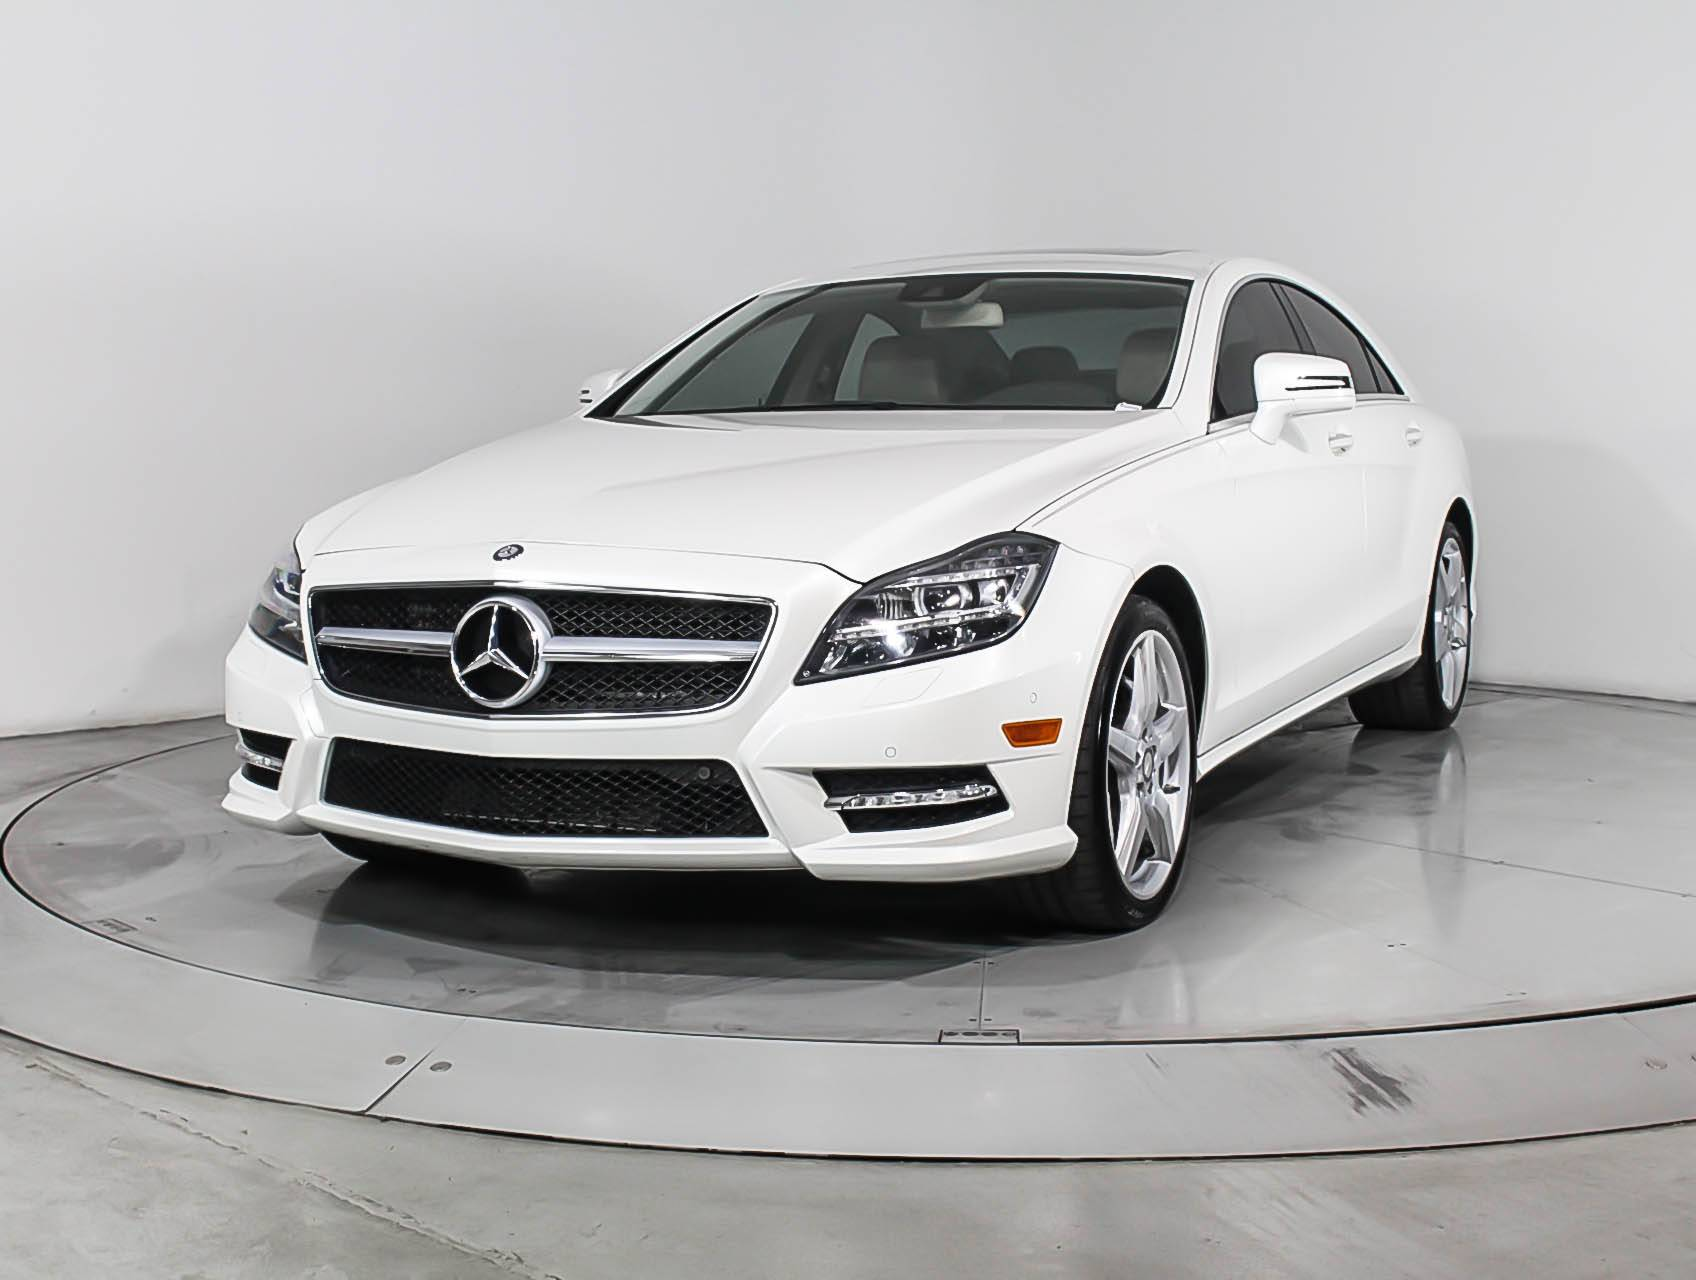 Used 2014 MERCEDES-BENZ CLS CLASS CLS550 Sedan for sale in MIAMI, FL